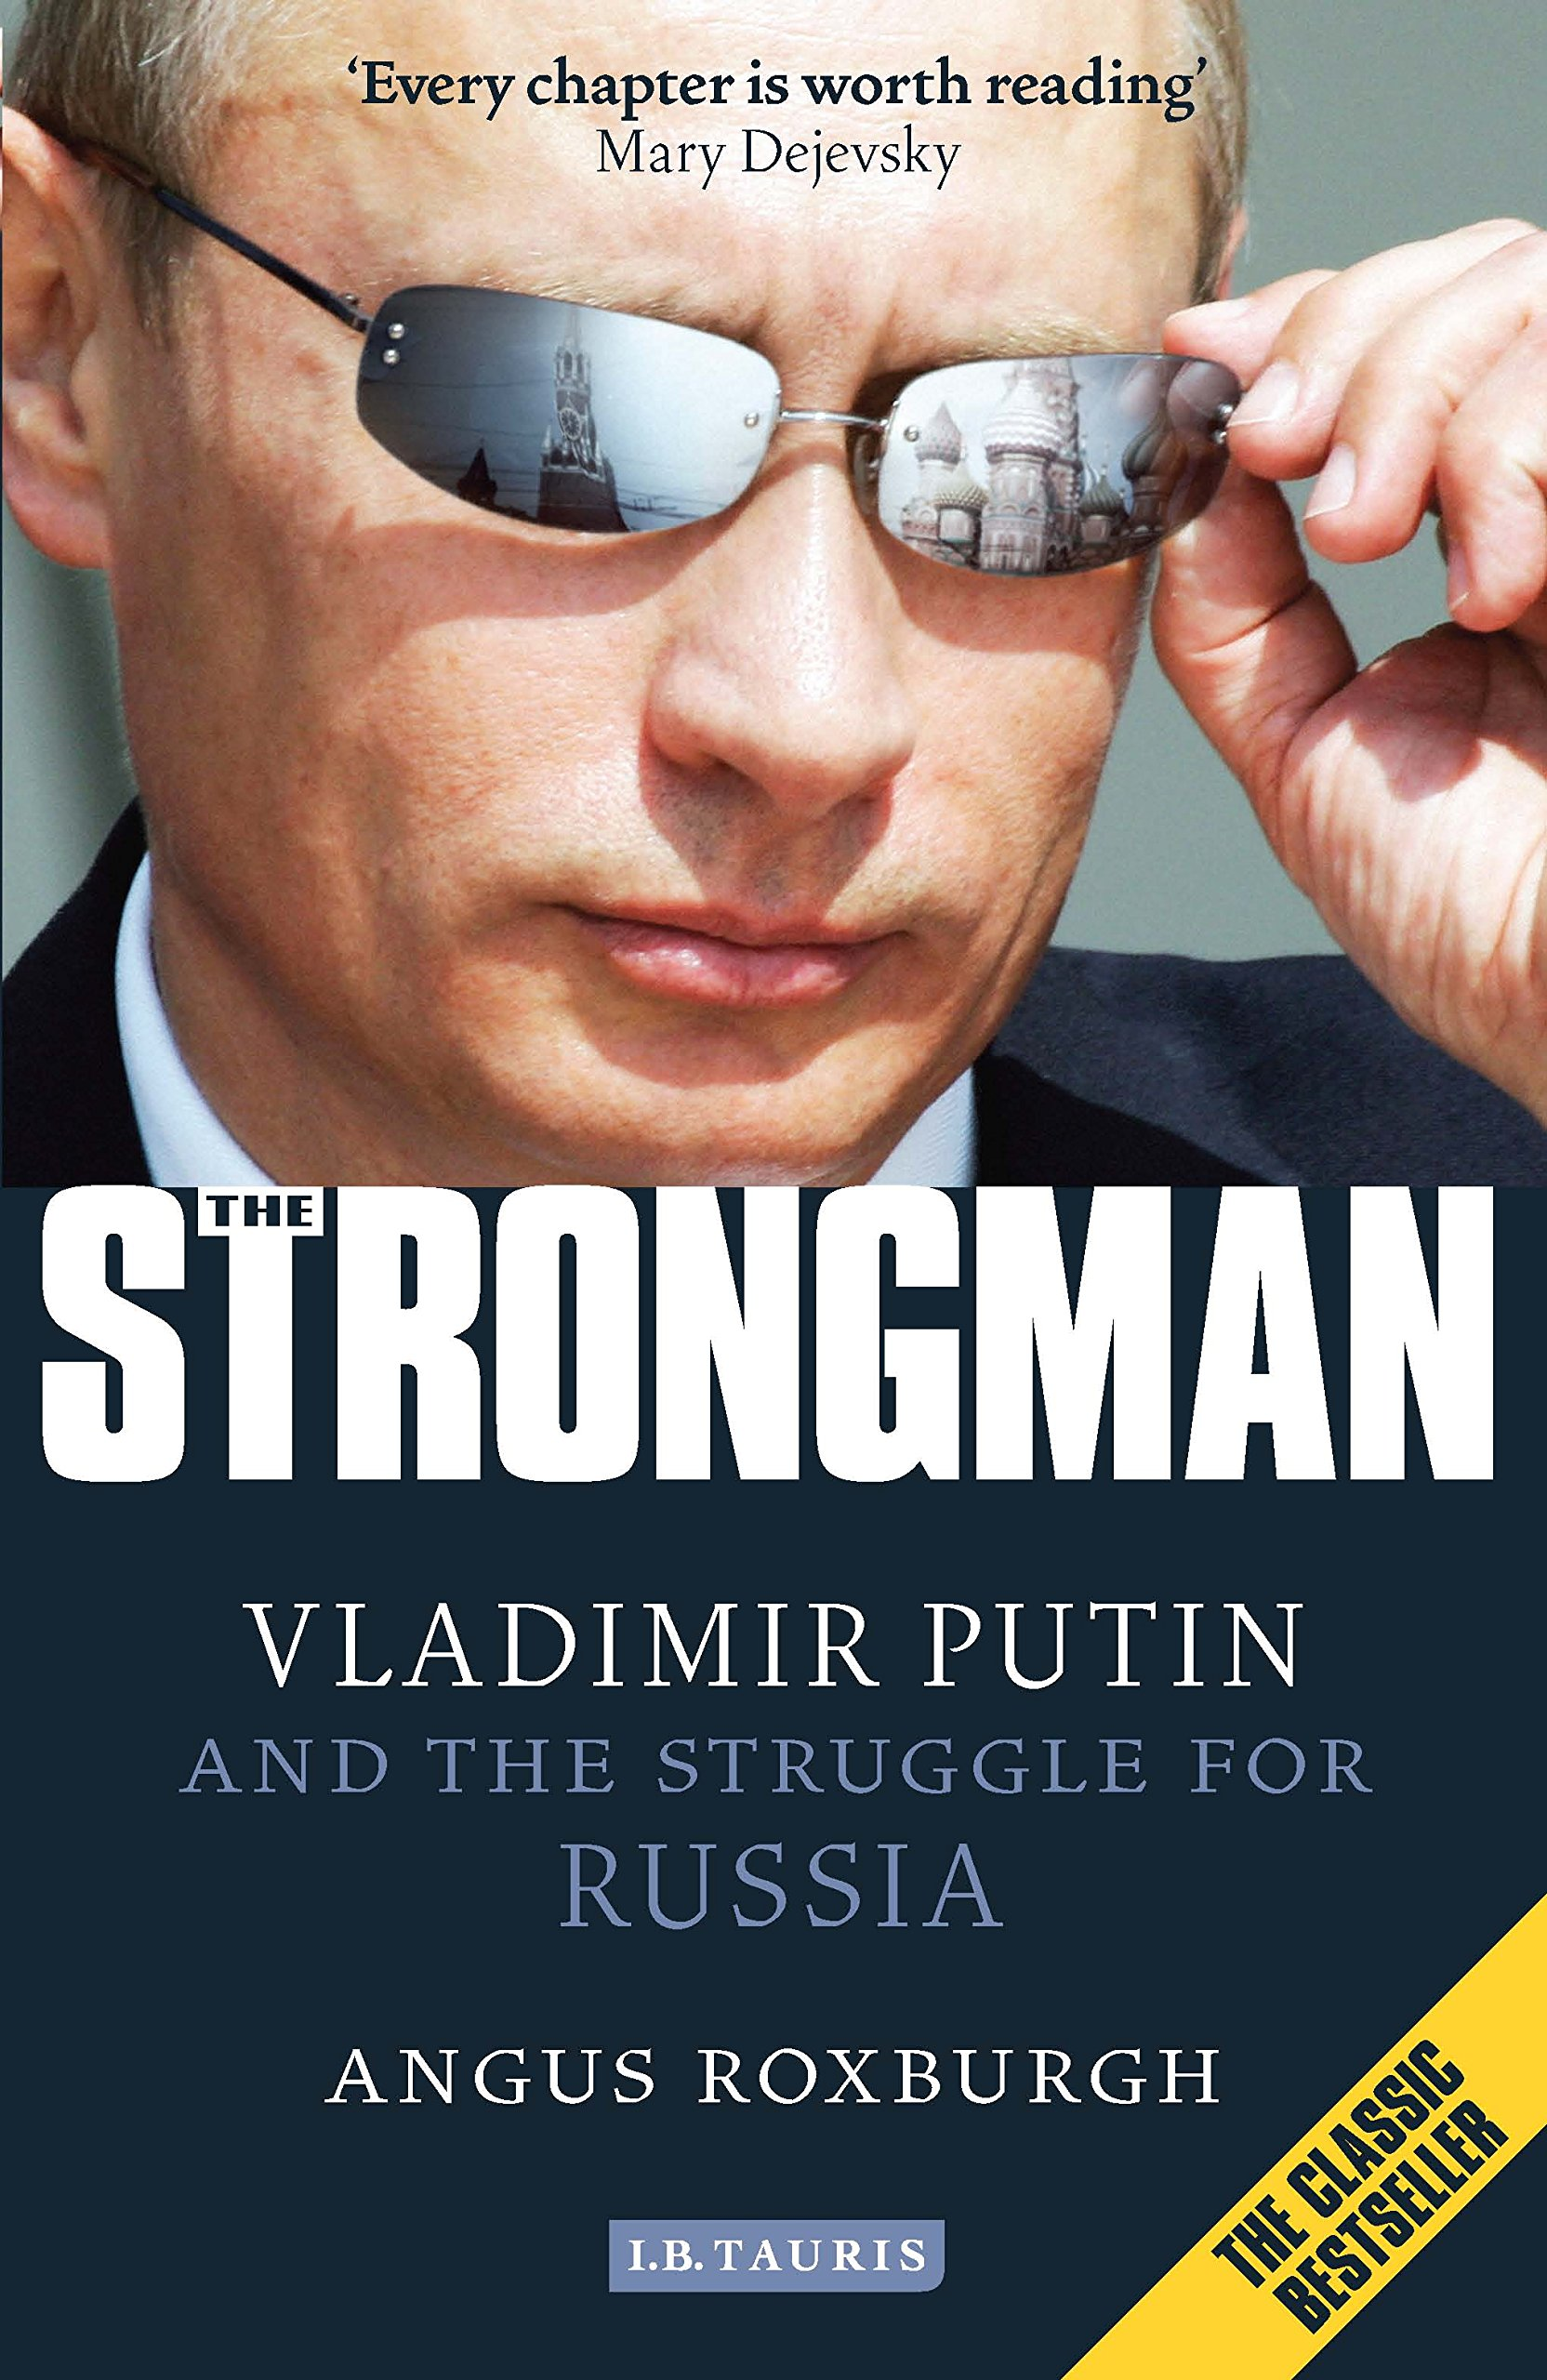 The Strongman: Vladimir Putin and the Struggle for Russia PDF